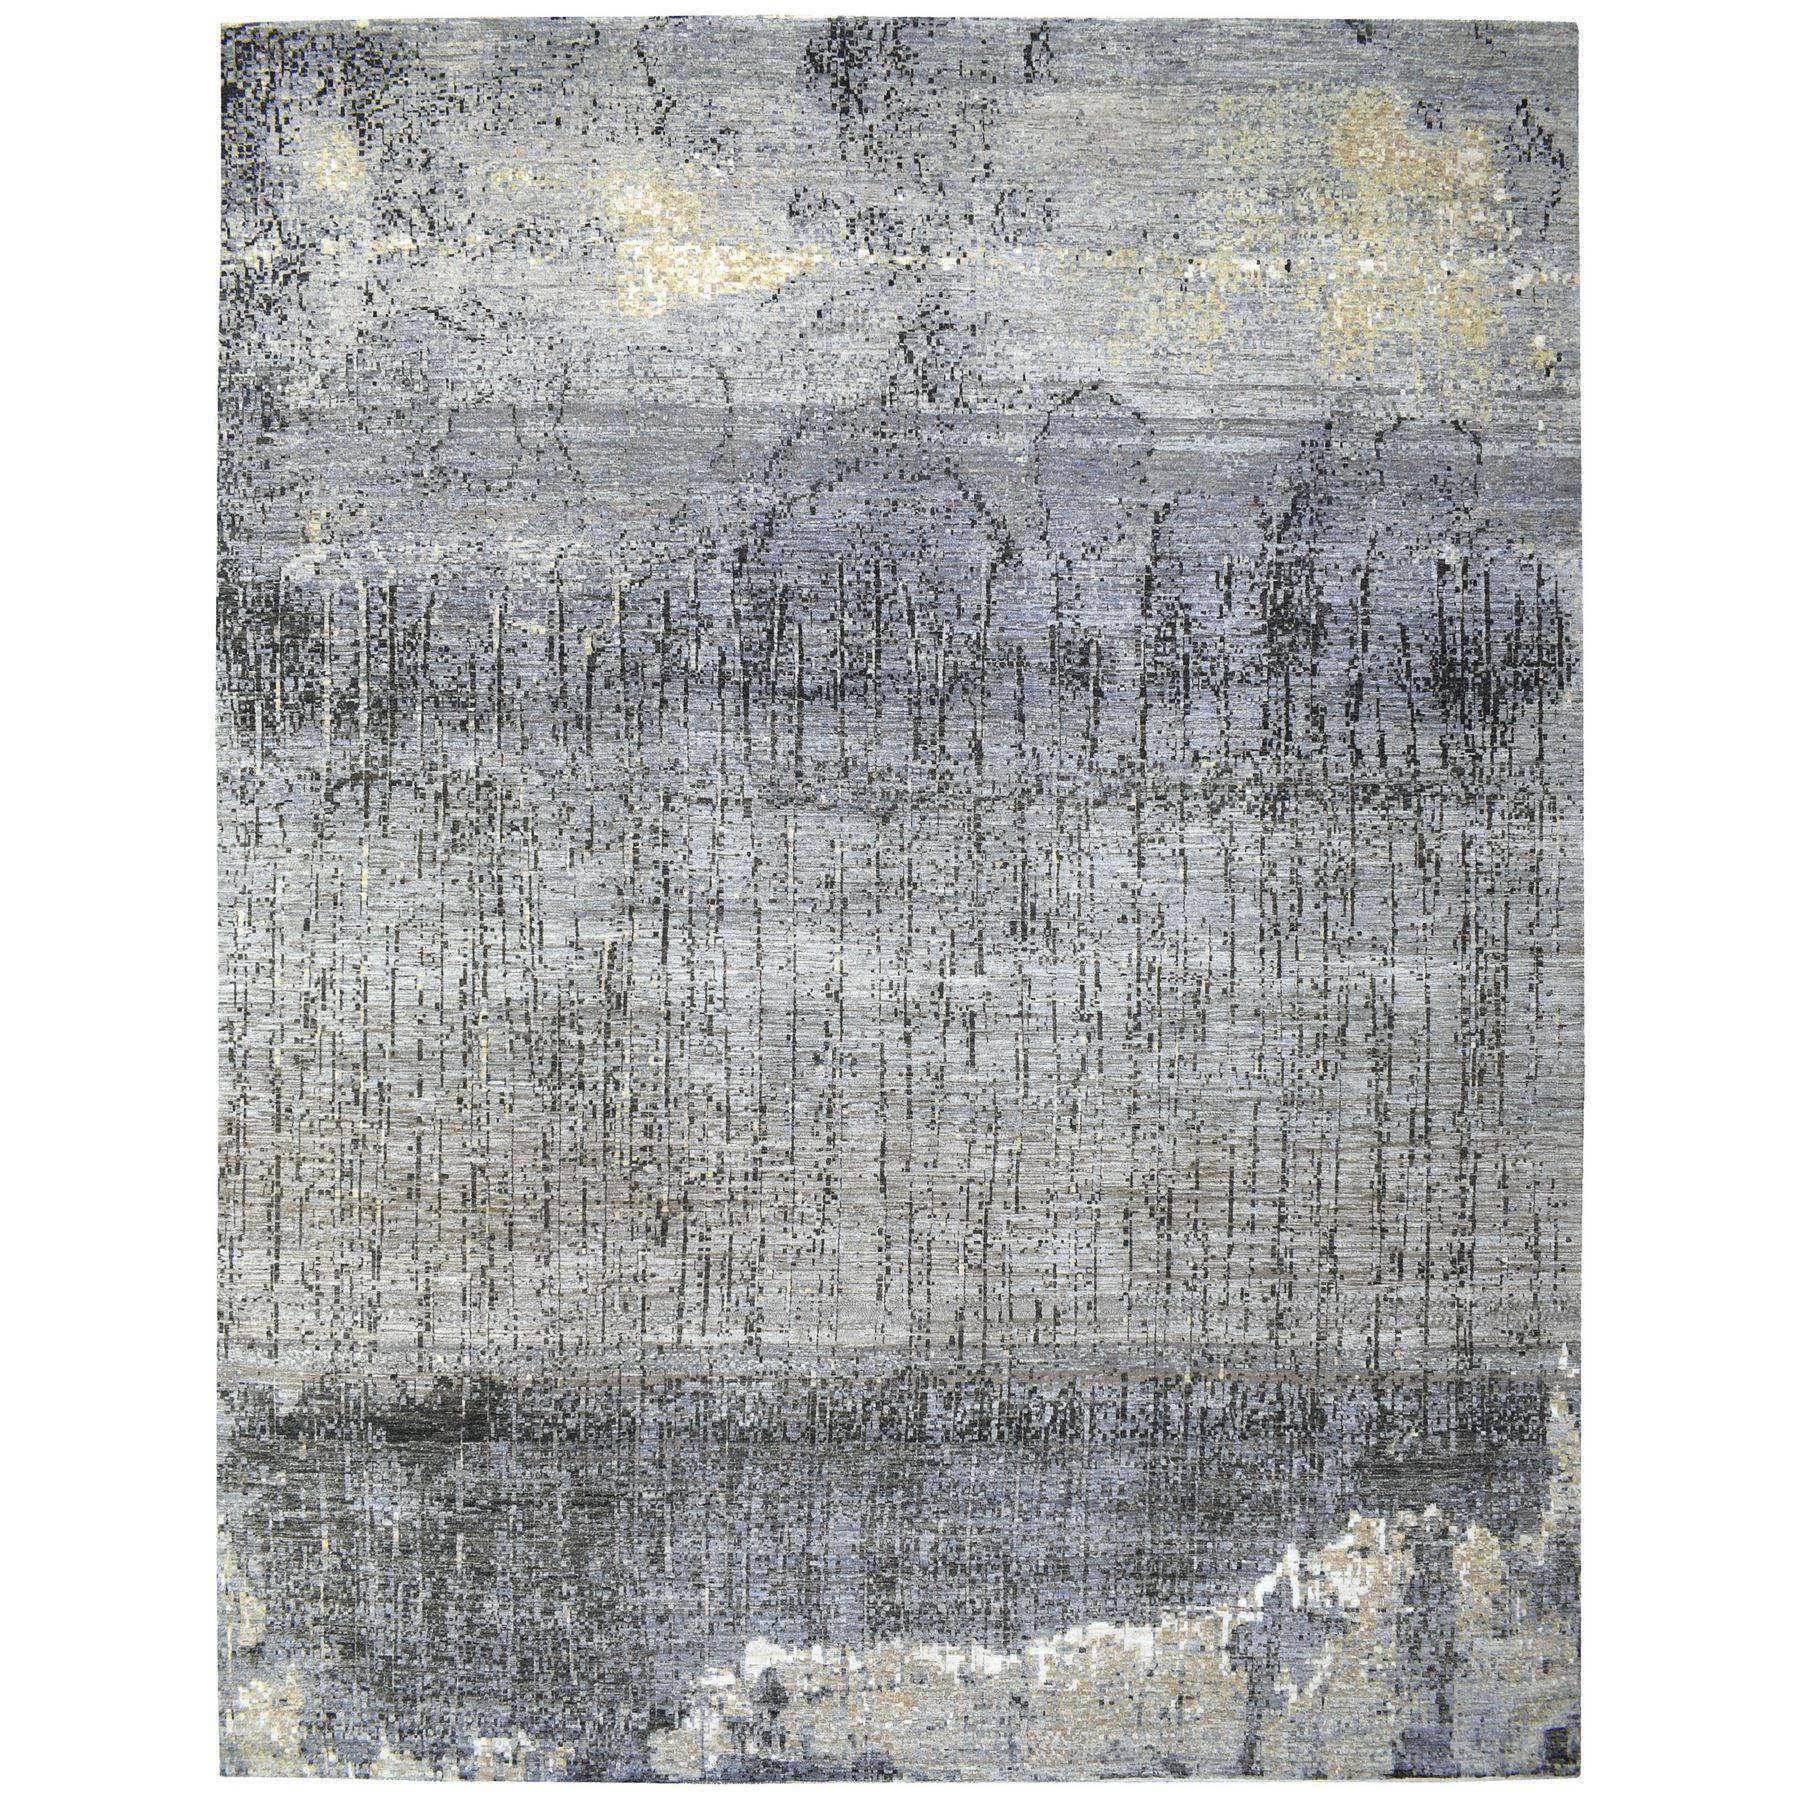 Modern & Contemporary Rugs LUV609714